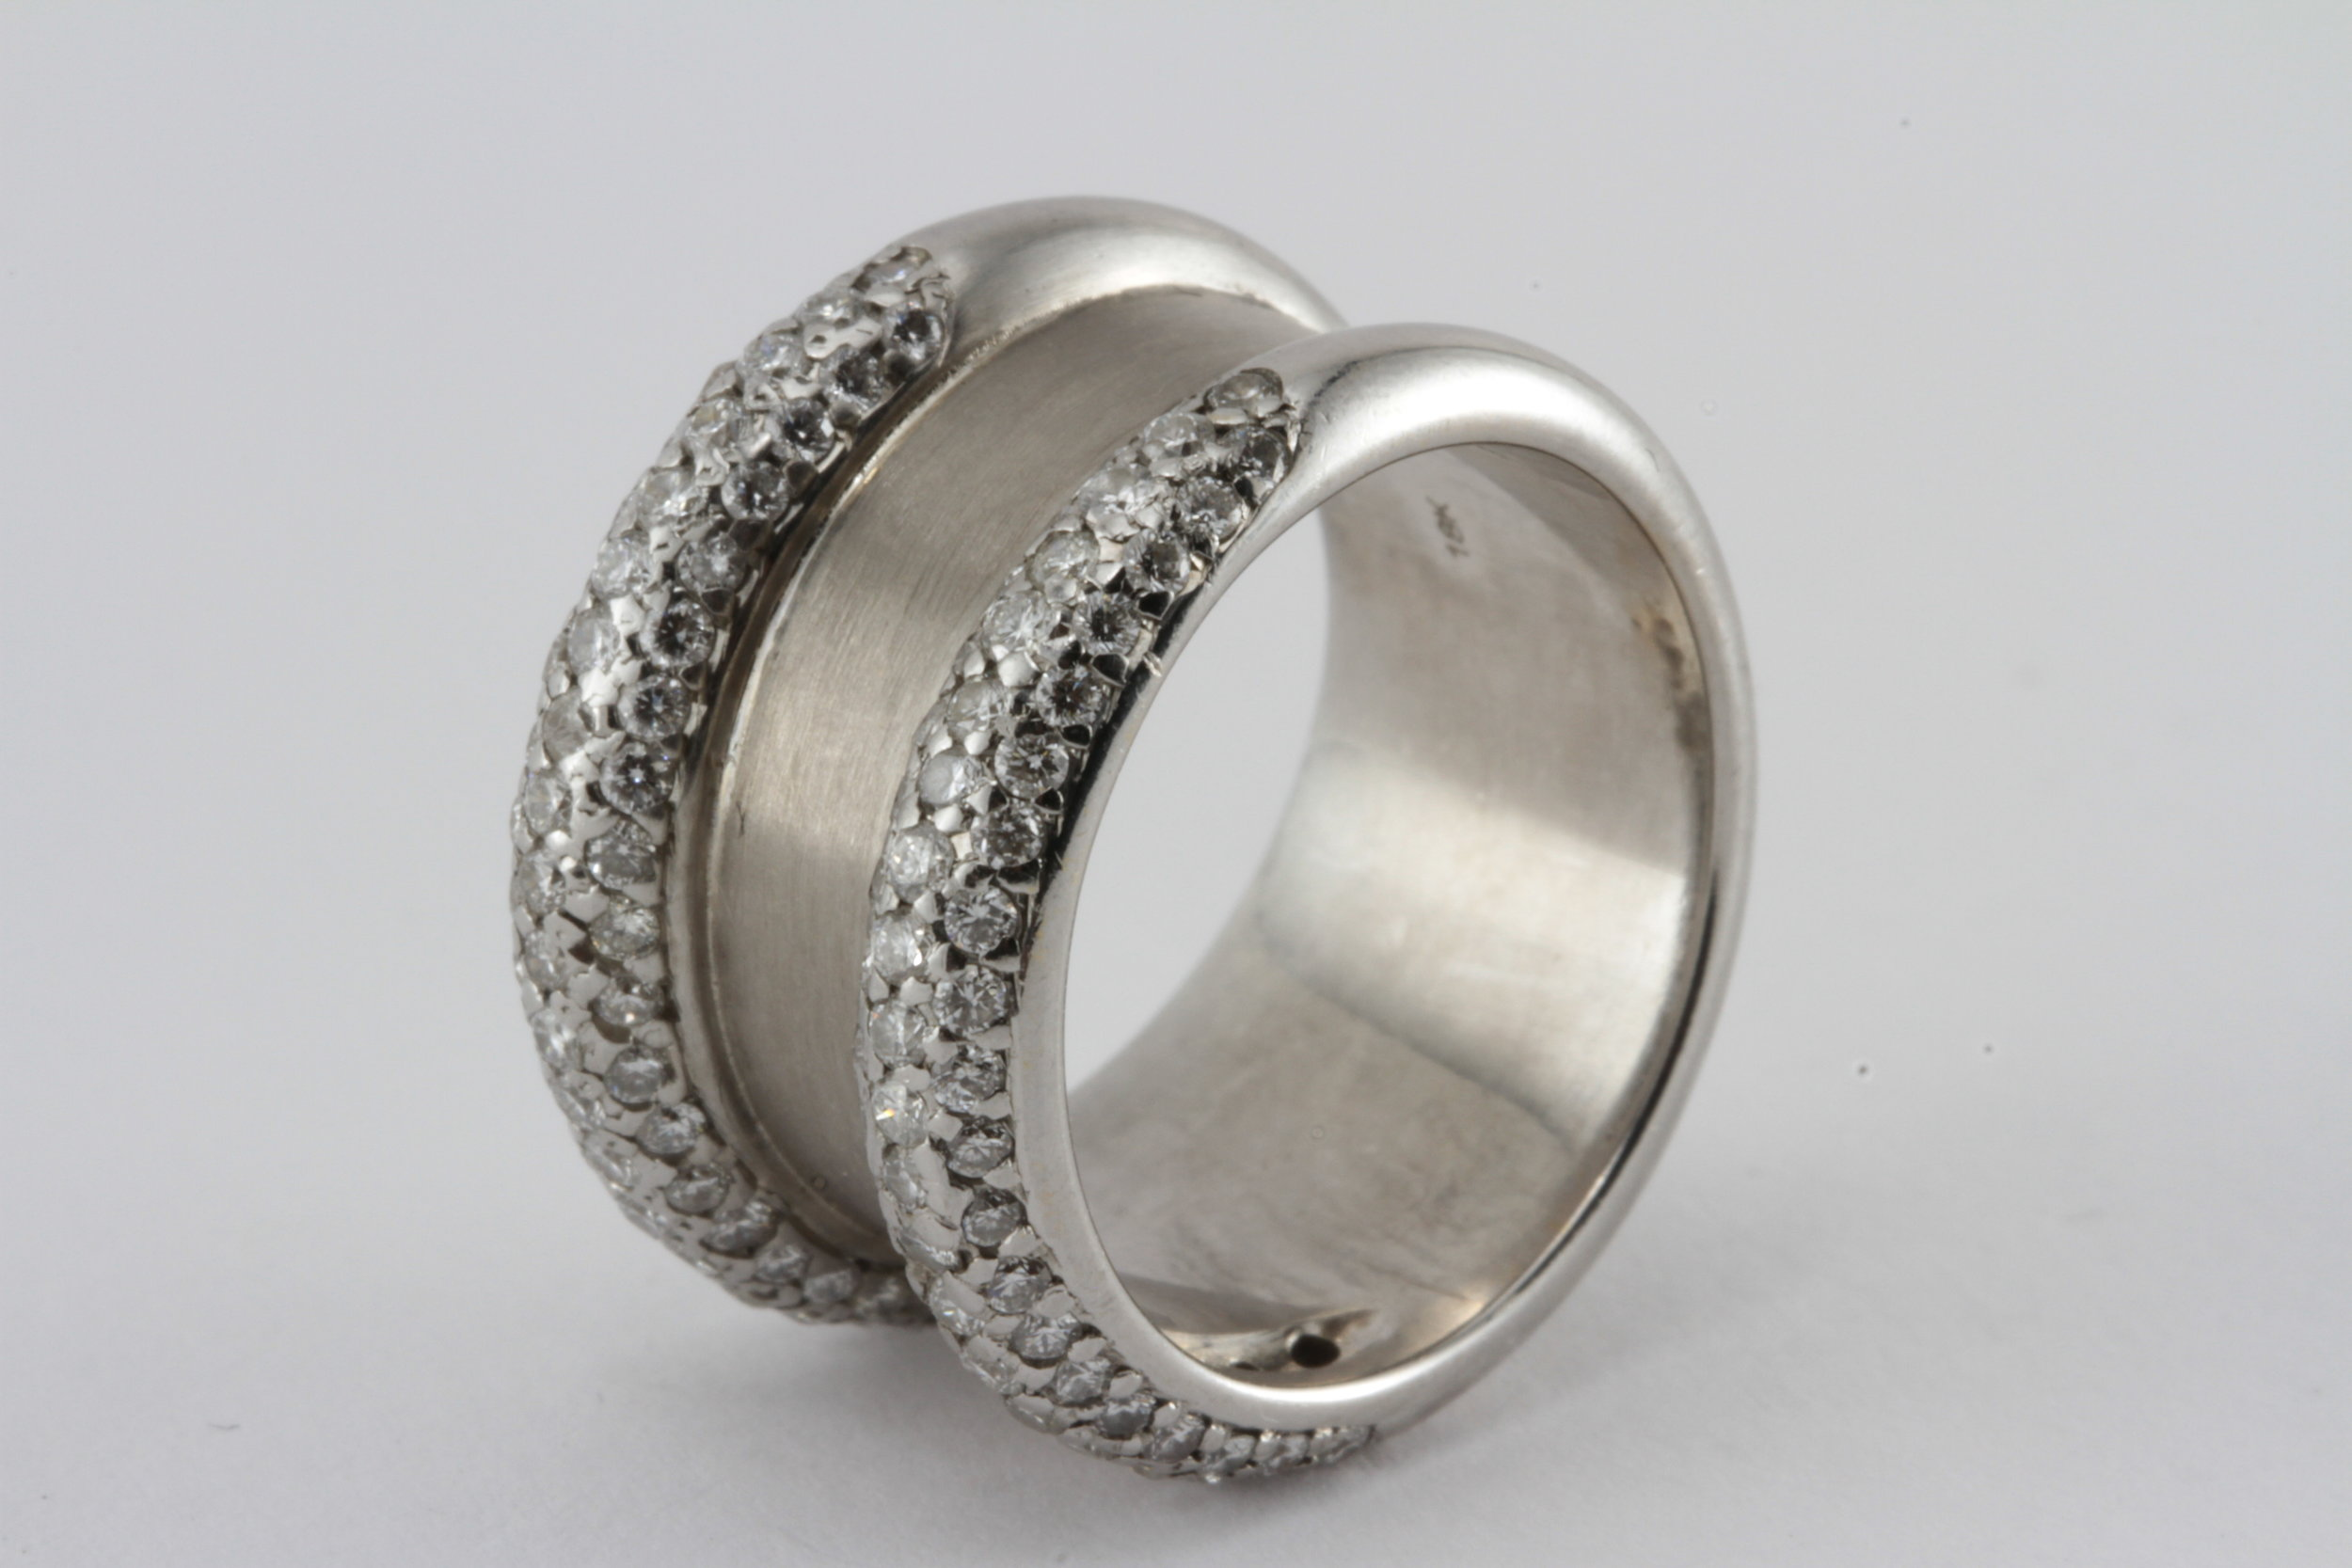 a contemporary 18k gold band with 2 rows of pave set diamond